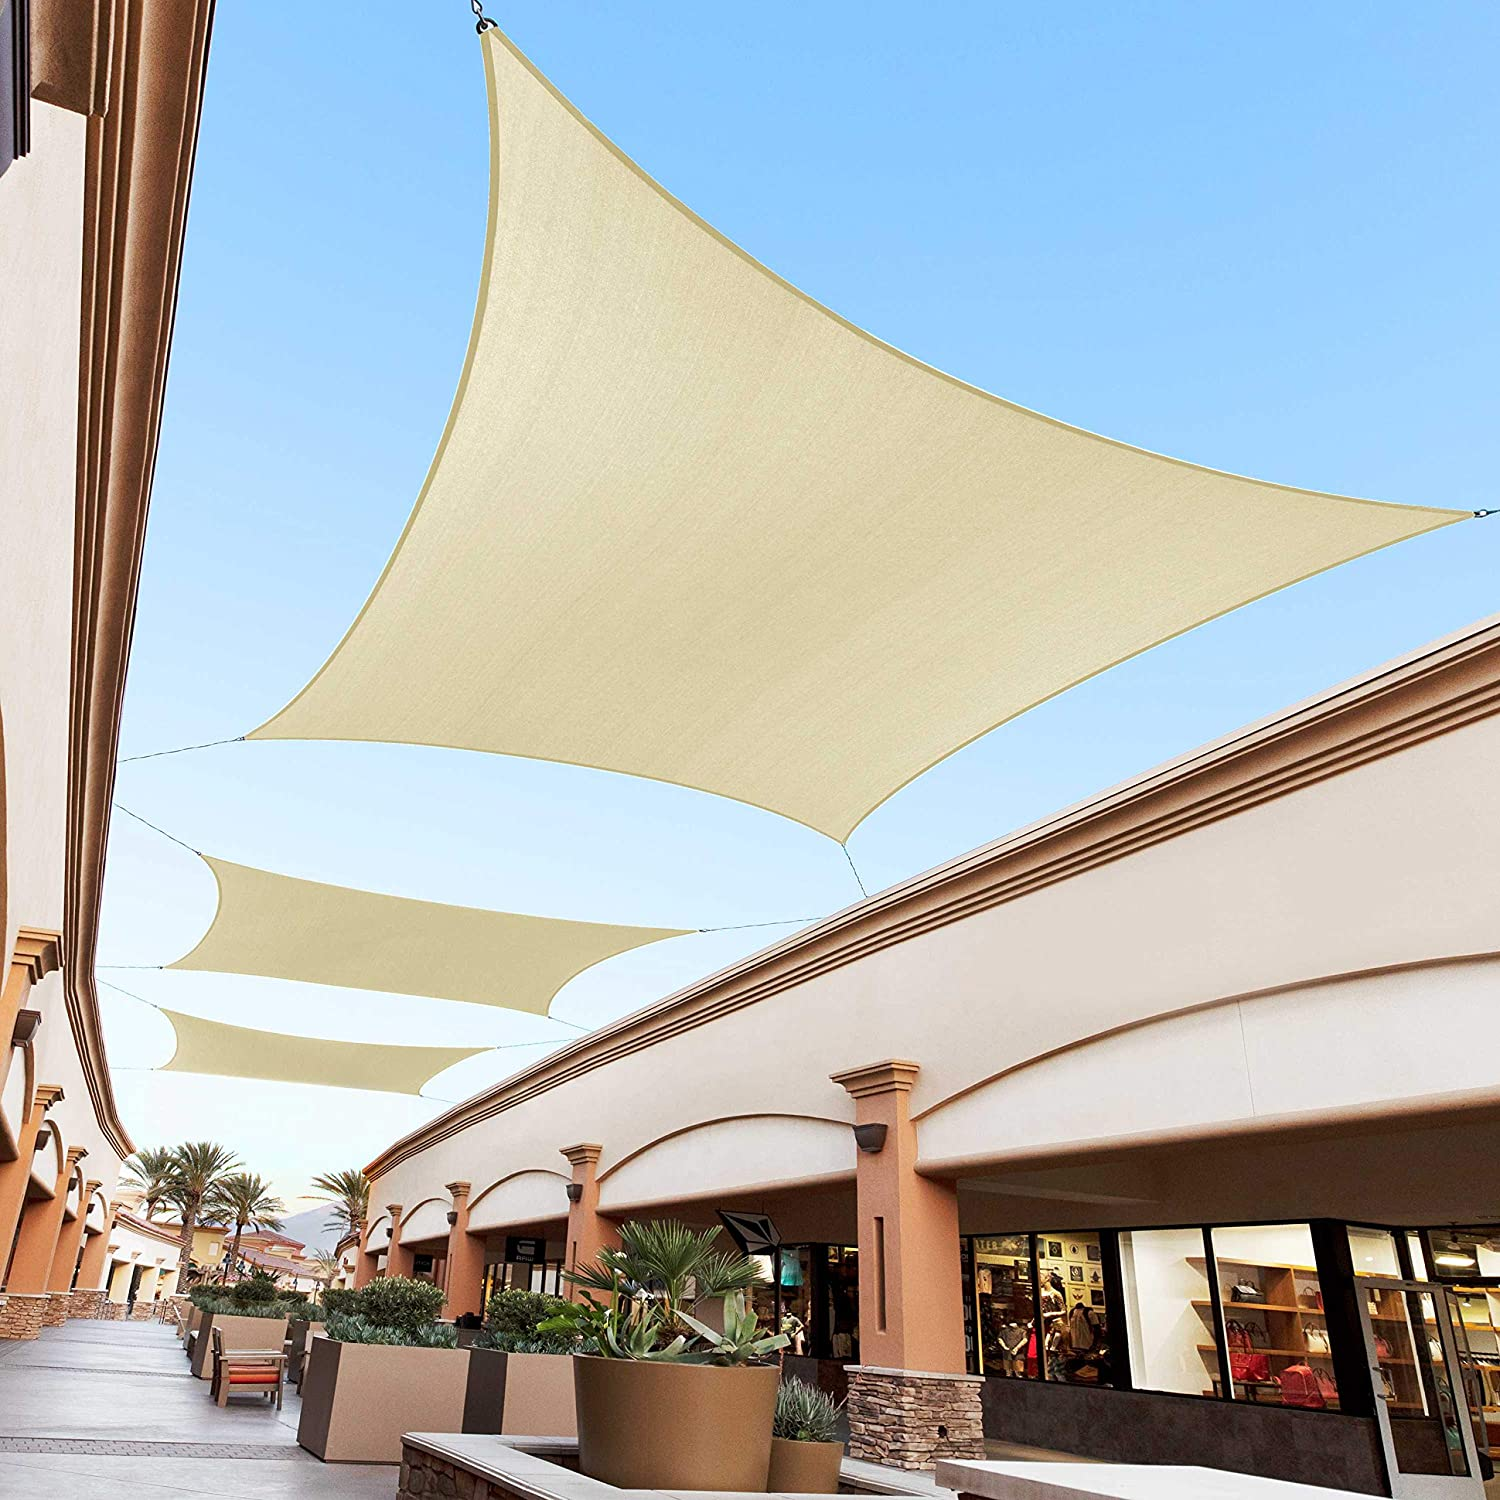 Royal Shade New Free Shipping 10' x Austin Mall 13' Beige Outd Sun Rectangle Sail Canopy